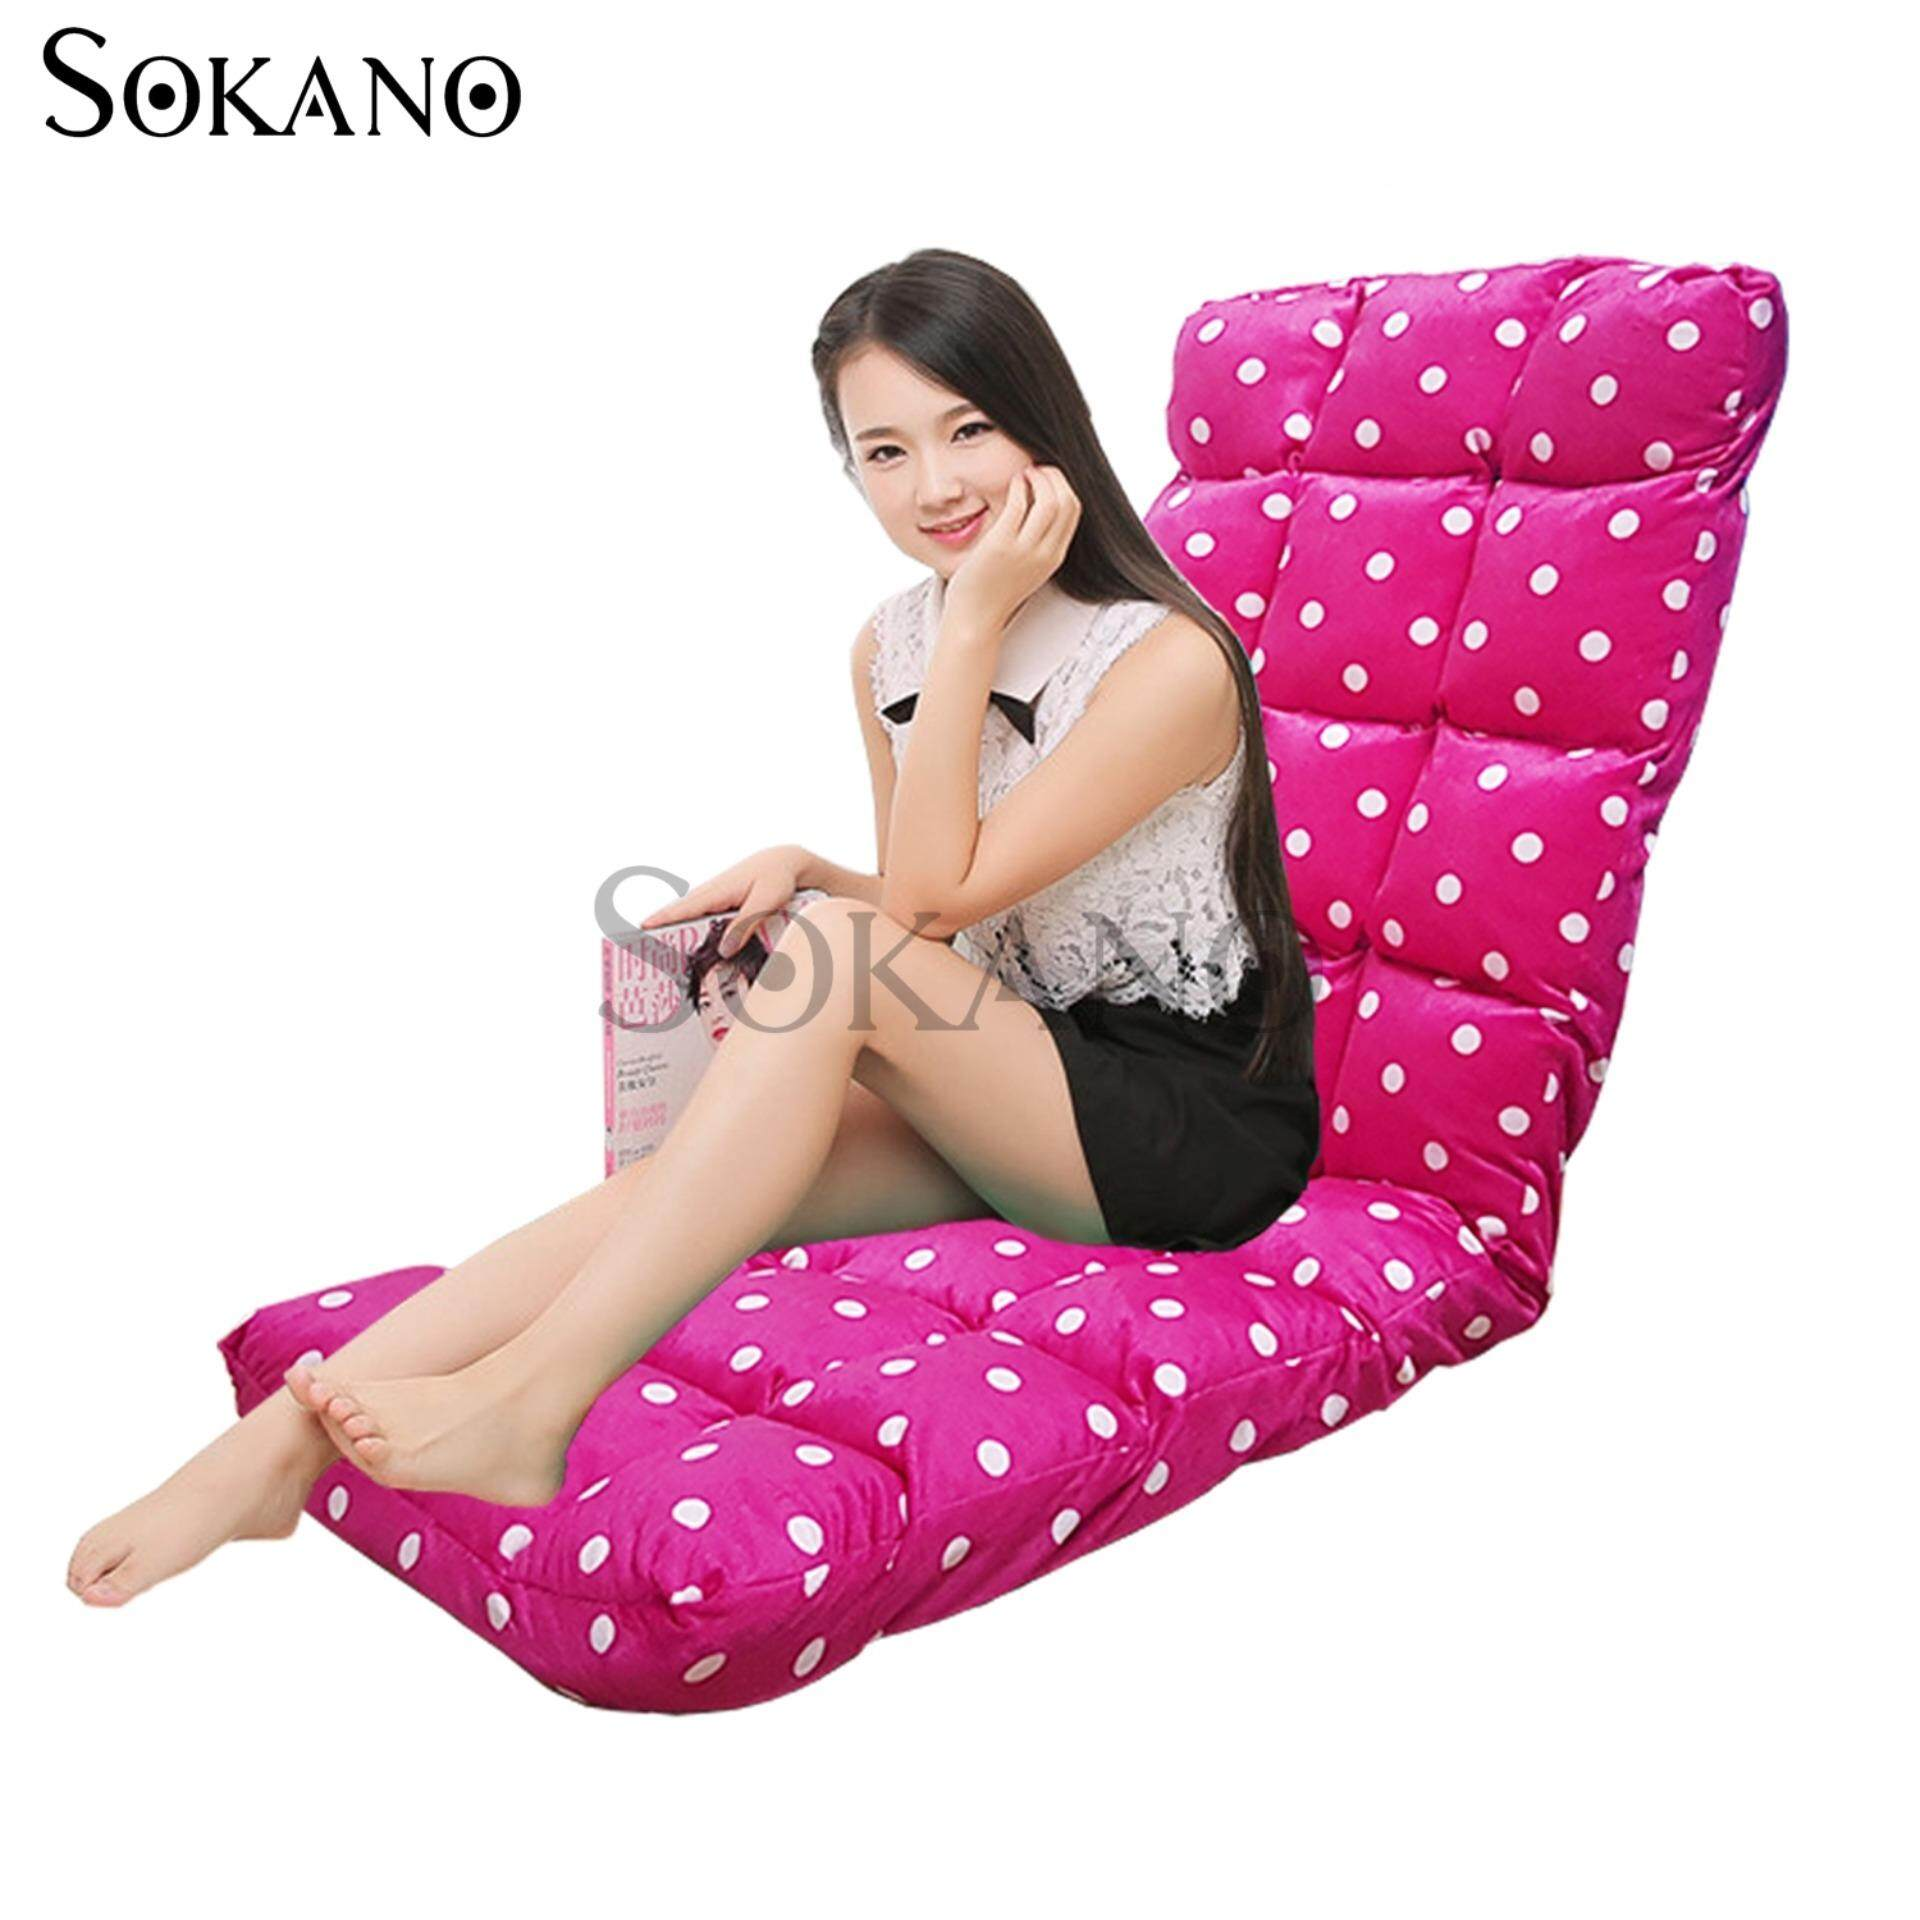 SOKANO SF005 XL Size Foldable Sofa Futon(147cm)- Pink Dot